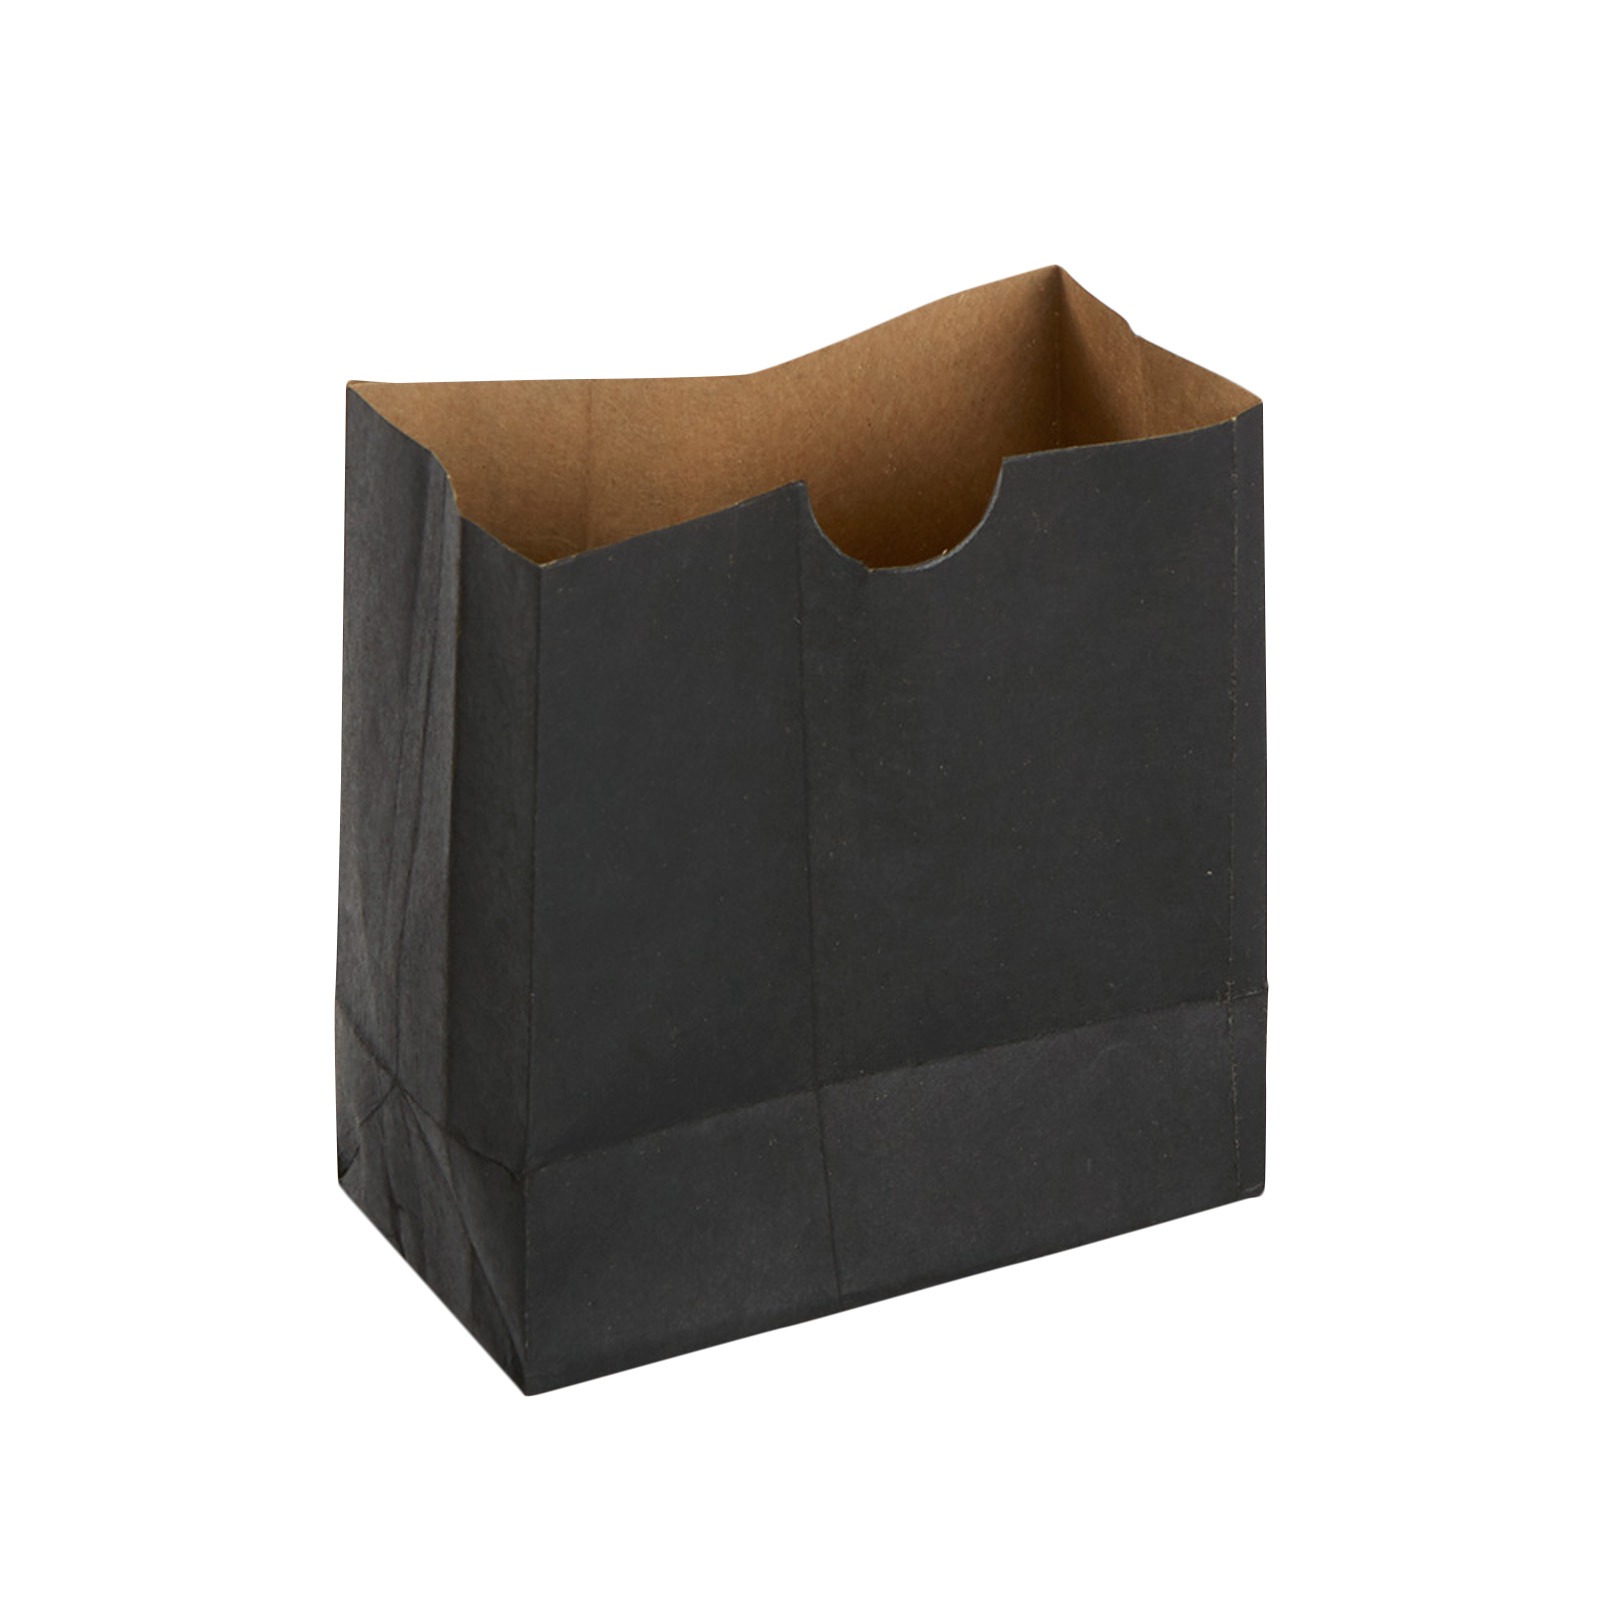 American Metalcraft SBB3 disposable take out container